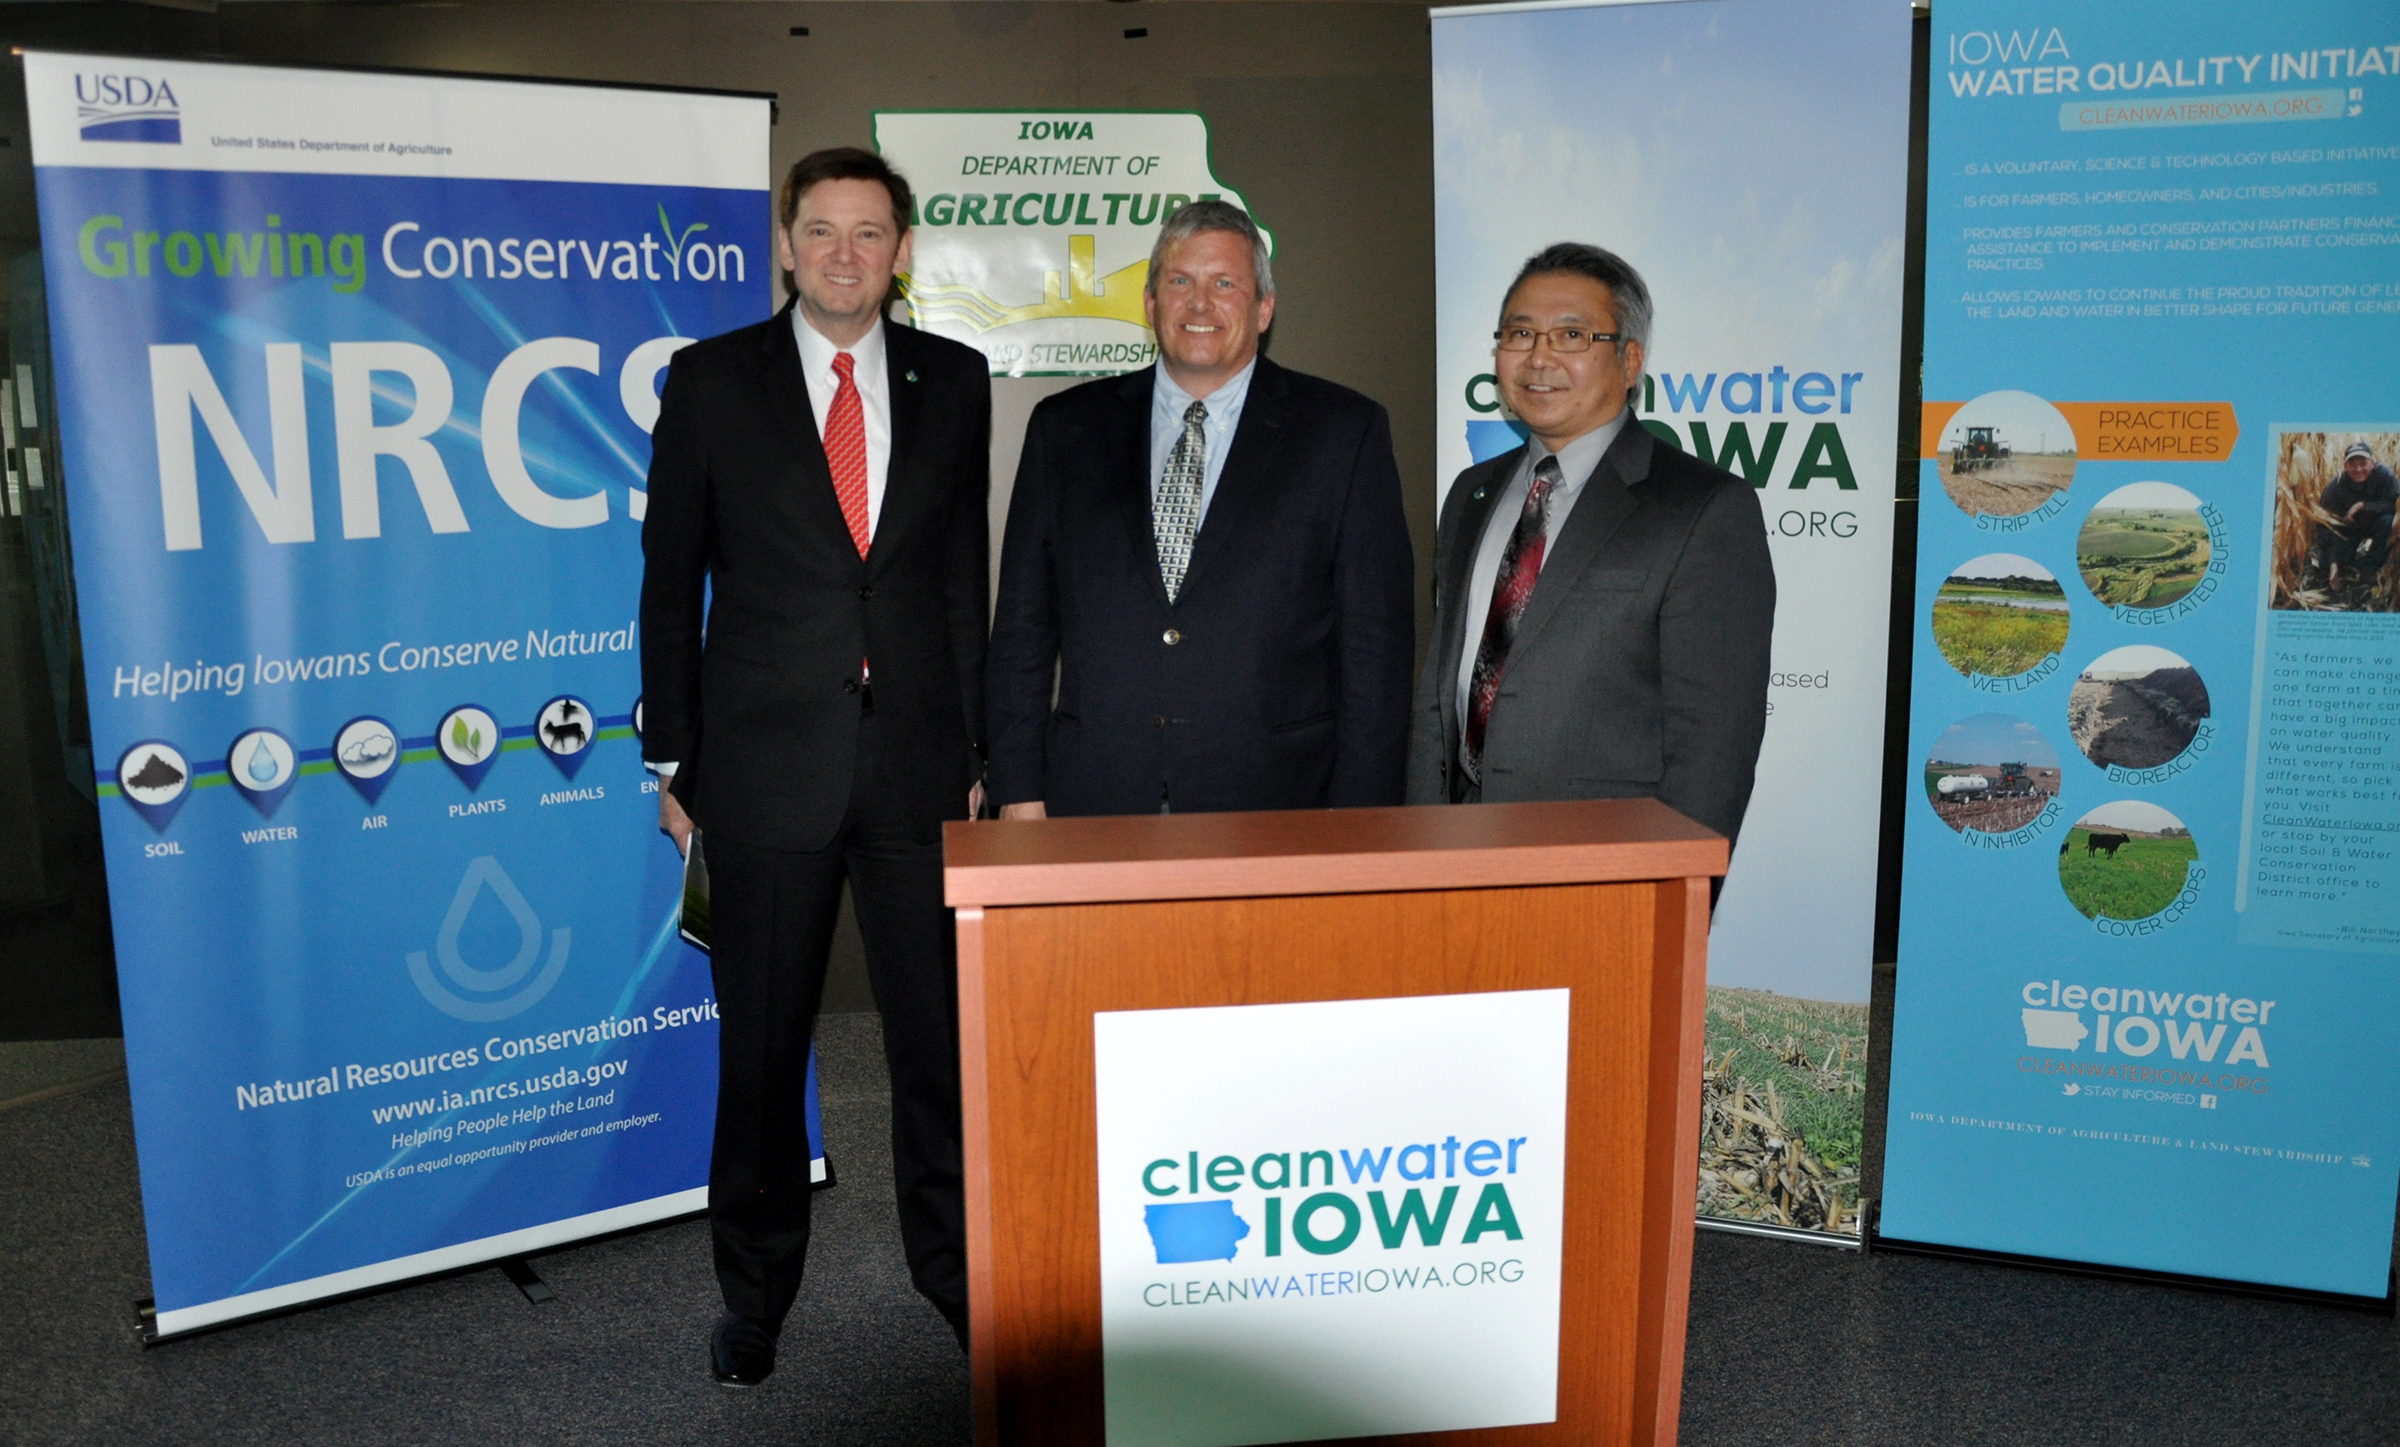 NRCS' Kirk Hanlin, Iowa Ag Sec. Bill Northey, and Iowa NRCS State Conservationist Jay Mar in DSM.